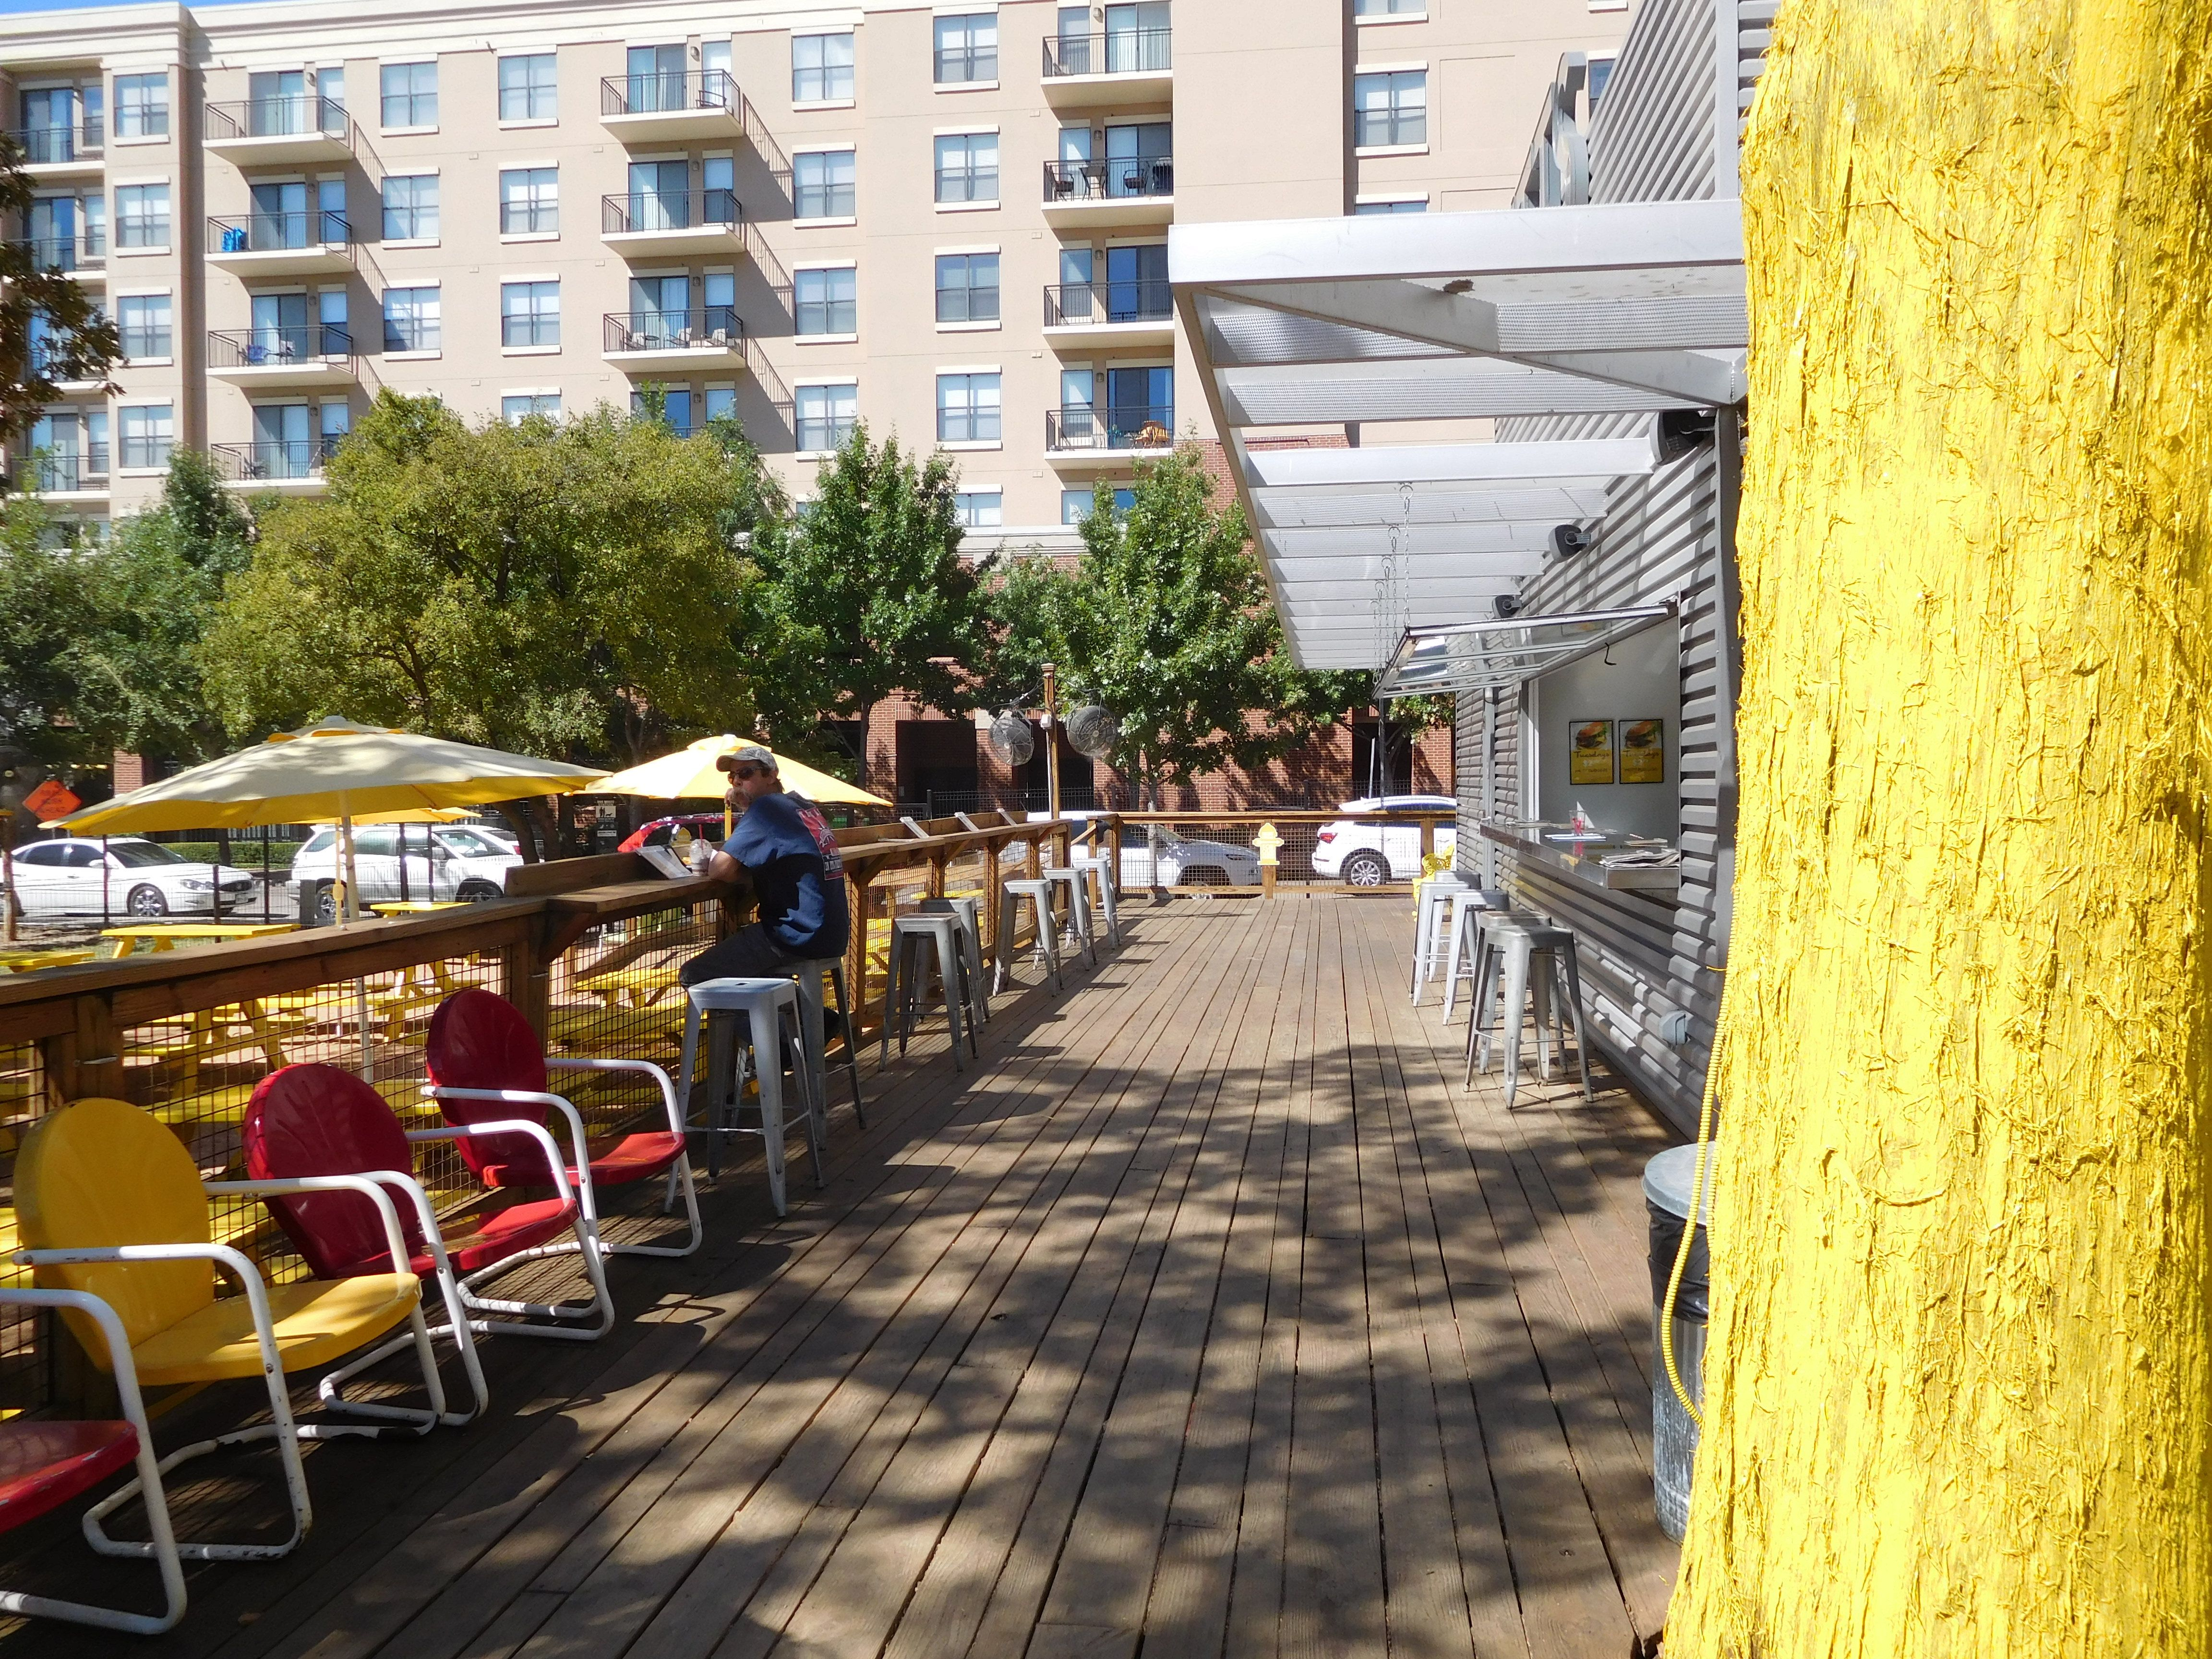 Canine Cantina, Dallas, Texas. Located near apartments and